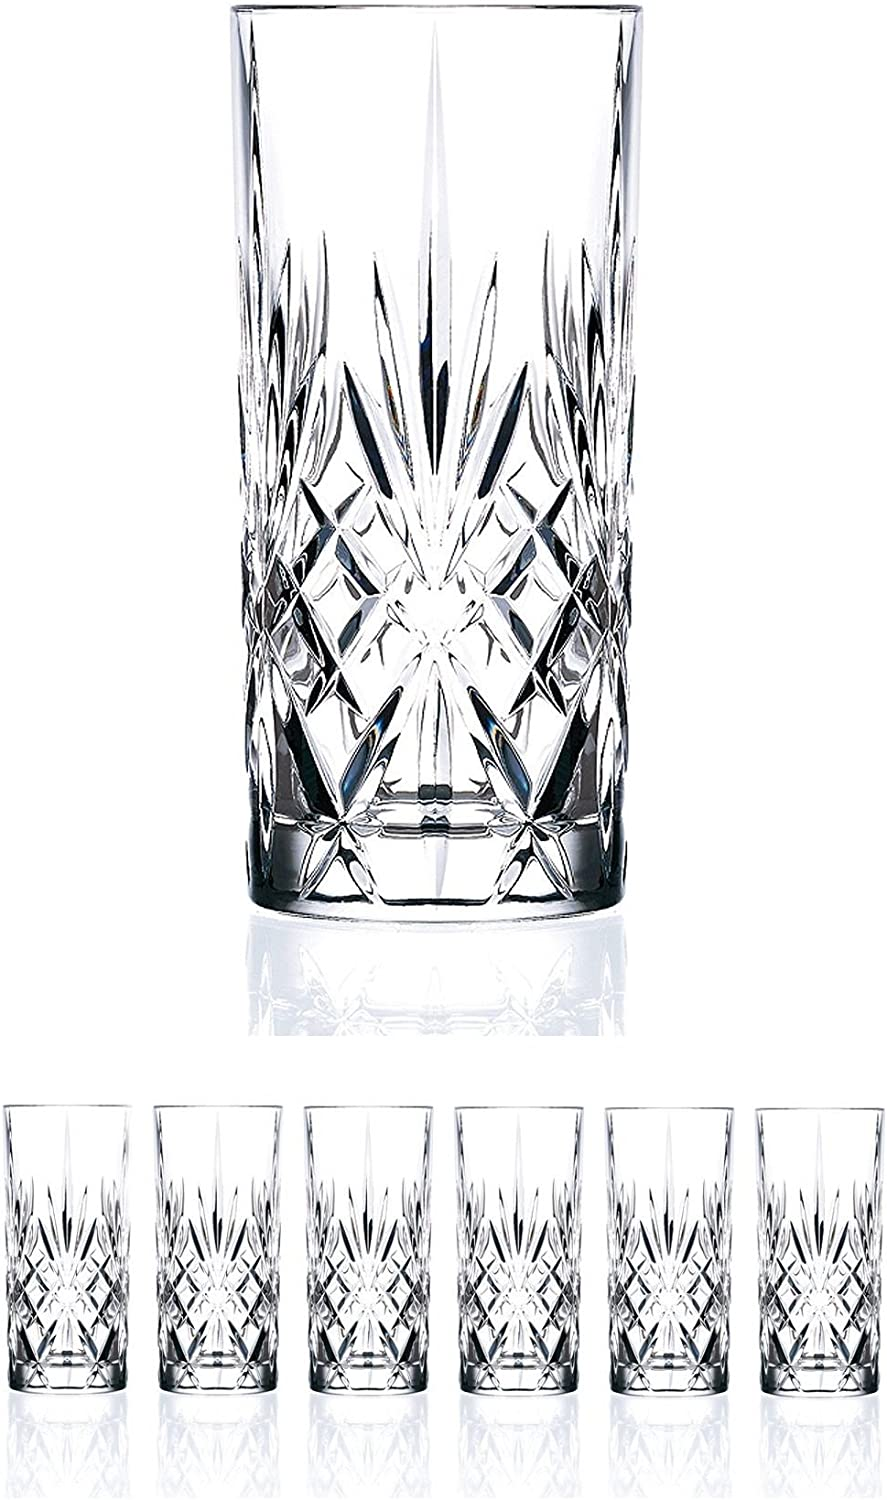 Set Of 6 Crystal Highball Durable Drinking Glasses Limited Edition Glassware Drinkware Cups Coolers 11oz Highball Glasses